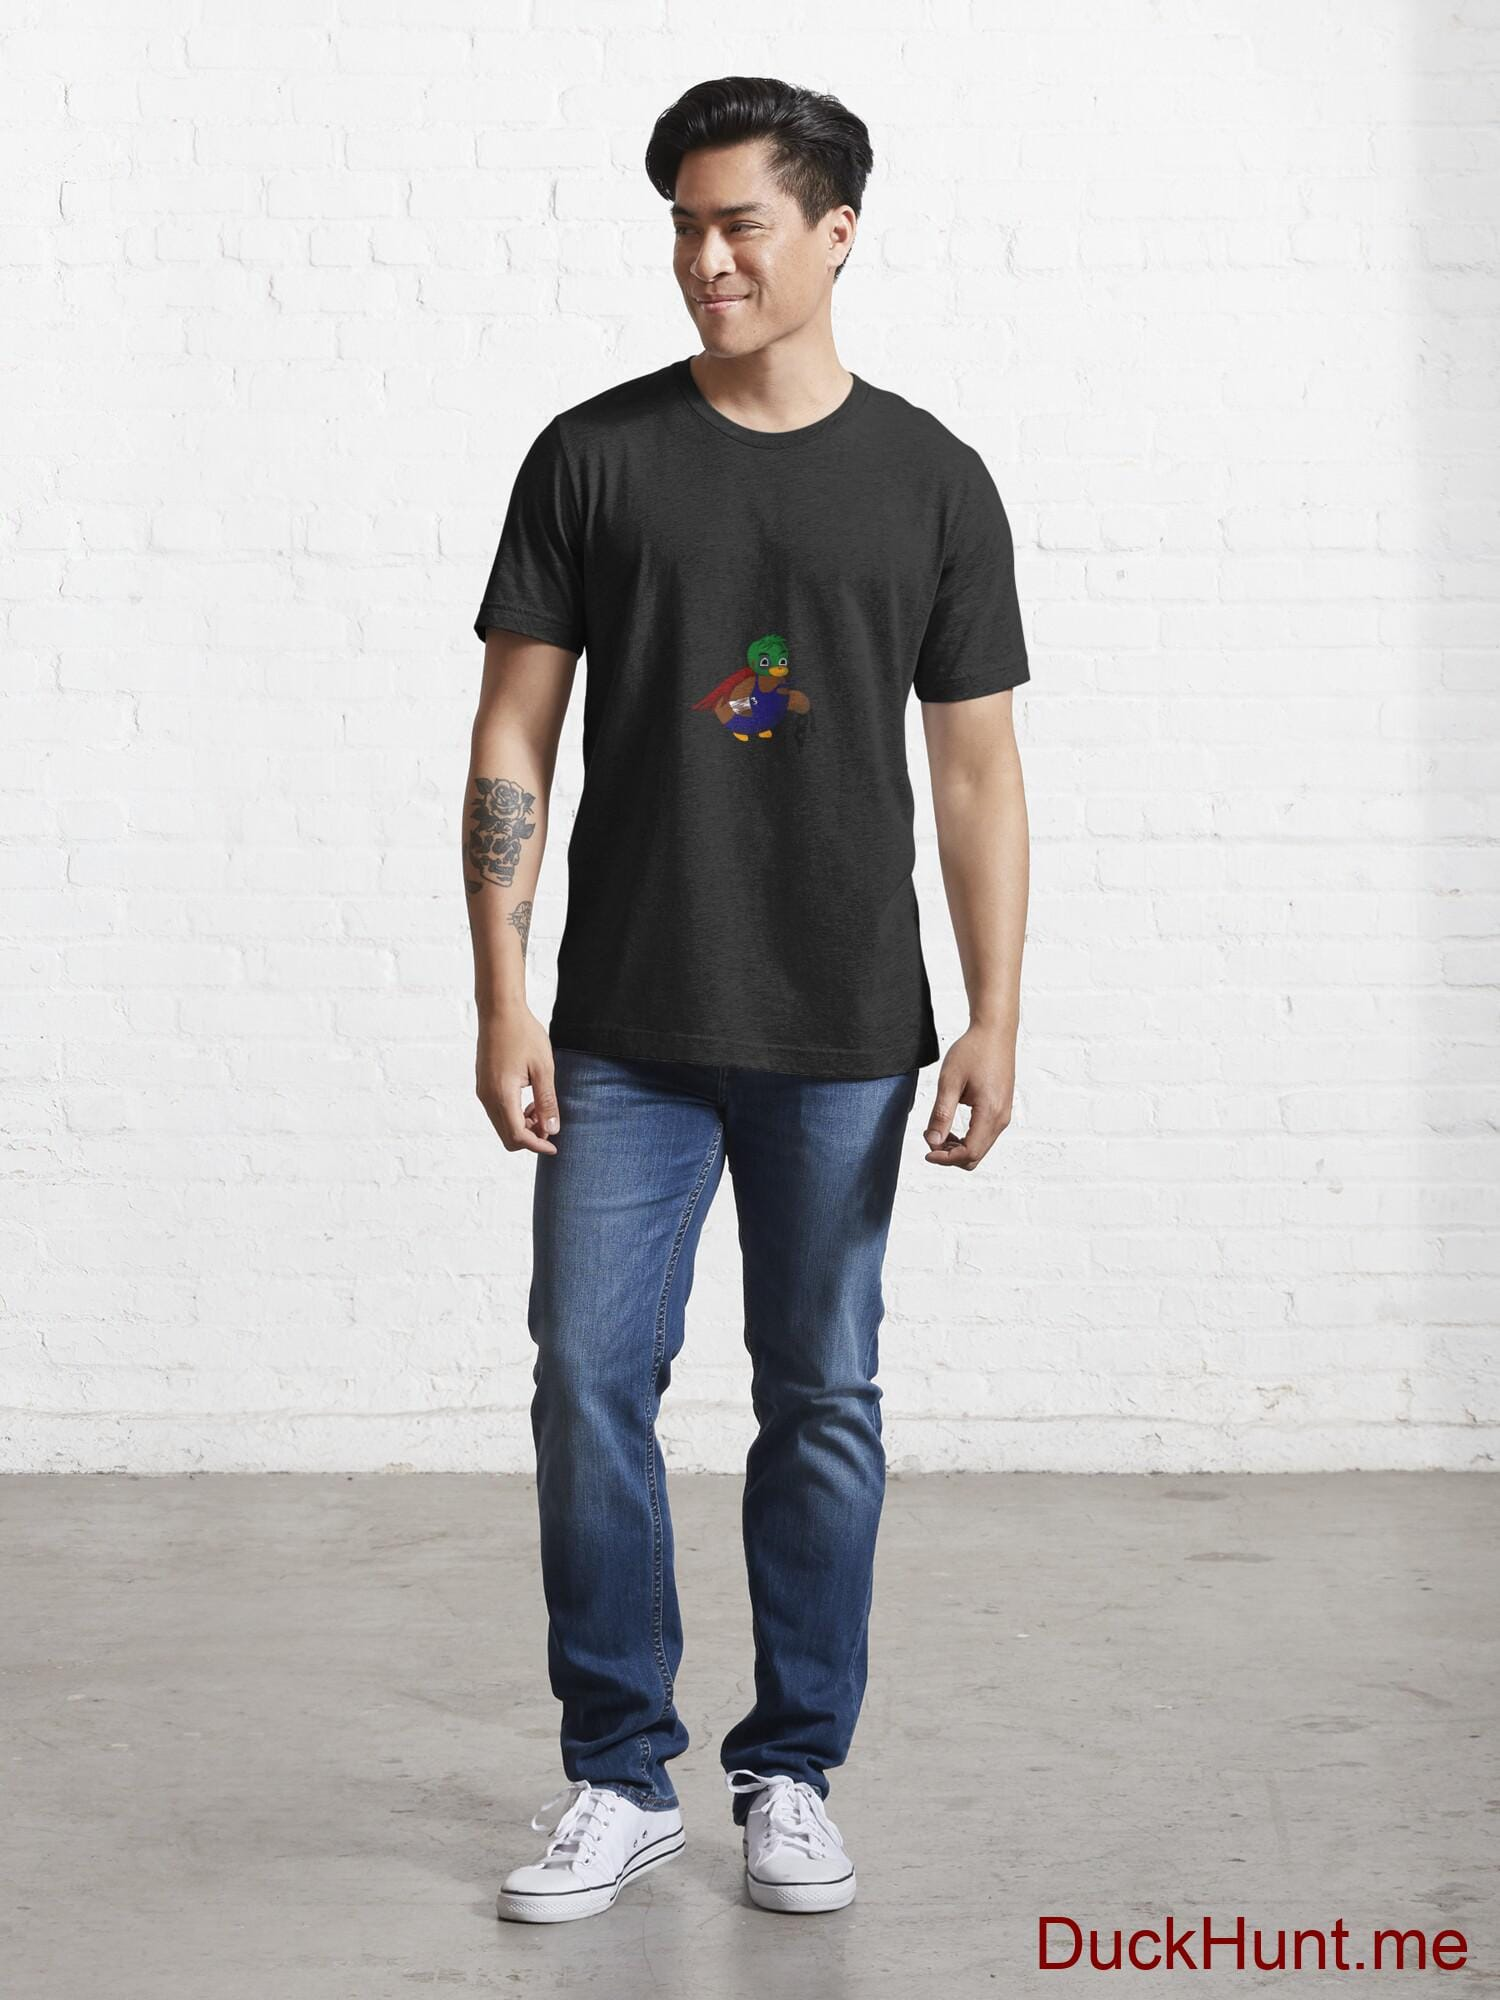 Dead DuckHunt Boss (smokeless) Black Essential T-Shirt (Front printed) alternative image 4